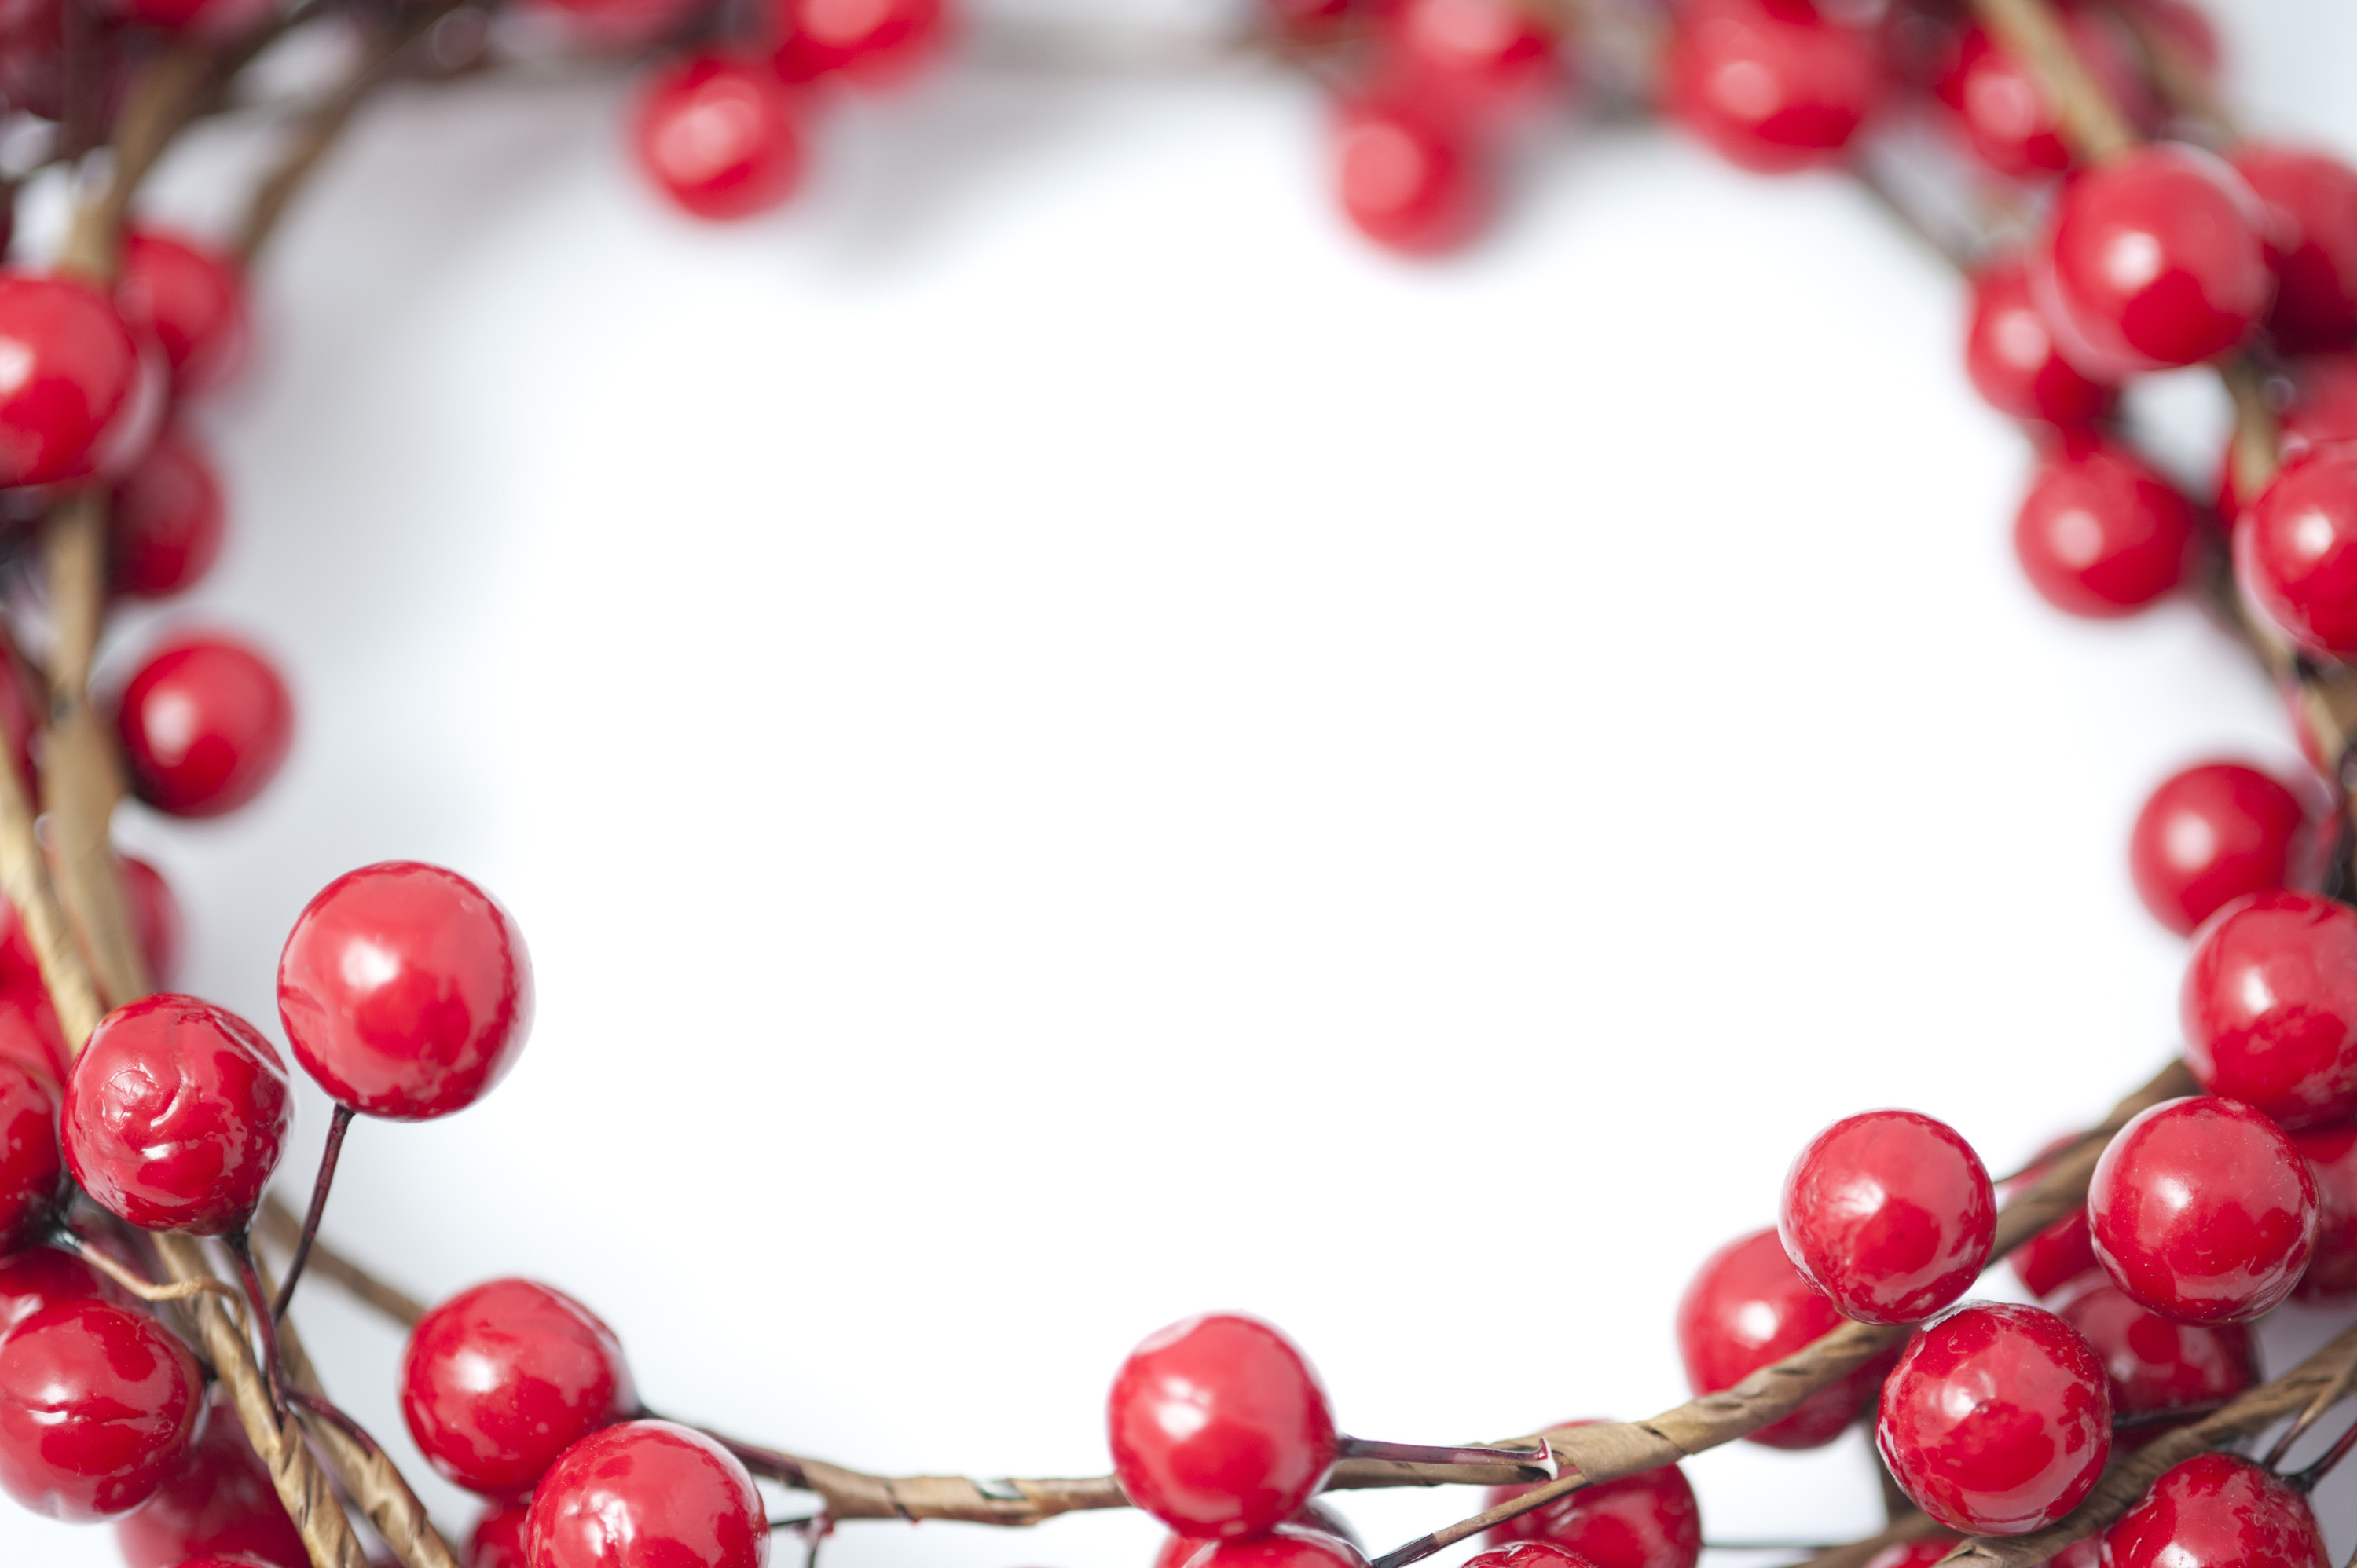 Free Stock Photo 13162 Border Or Frame Of Festive Red Christmas